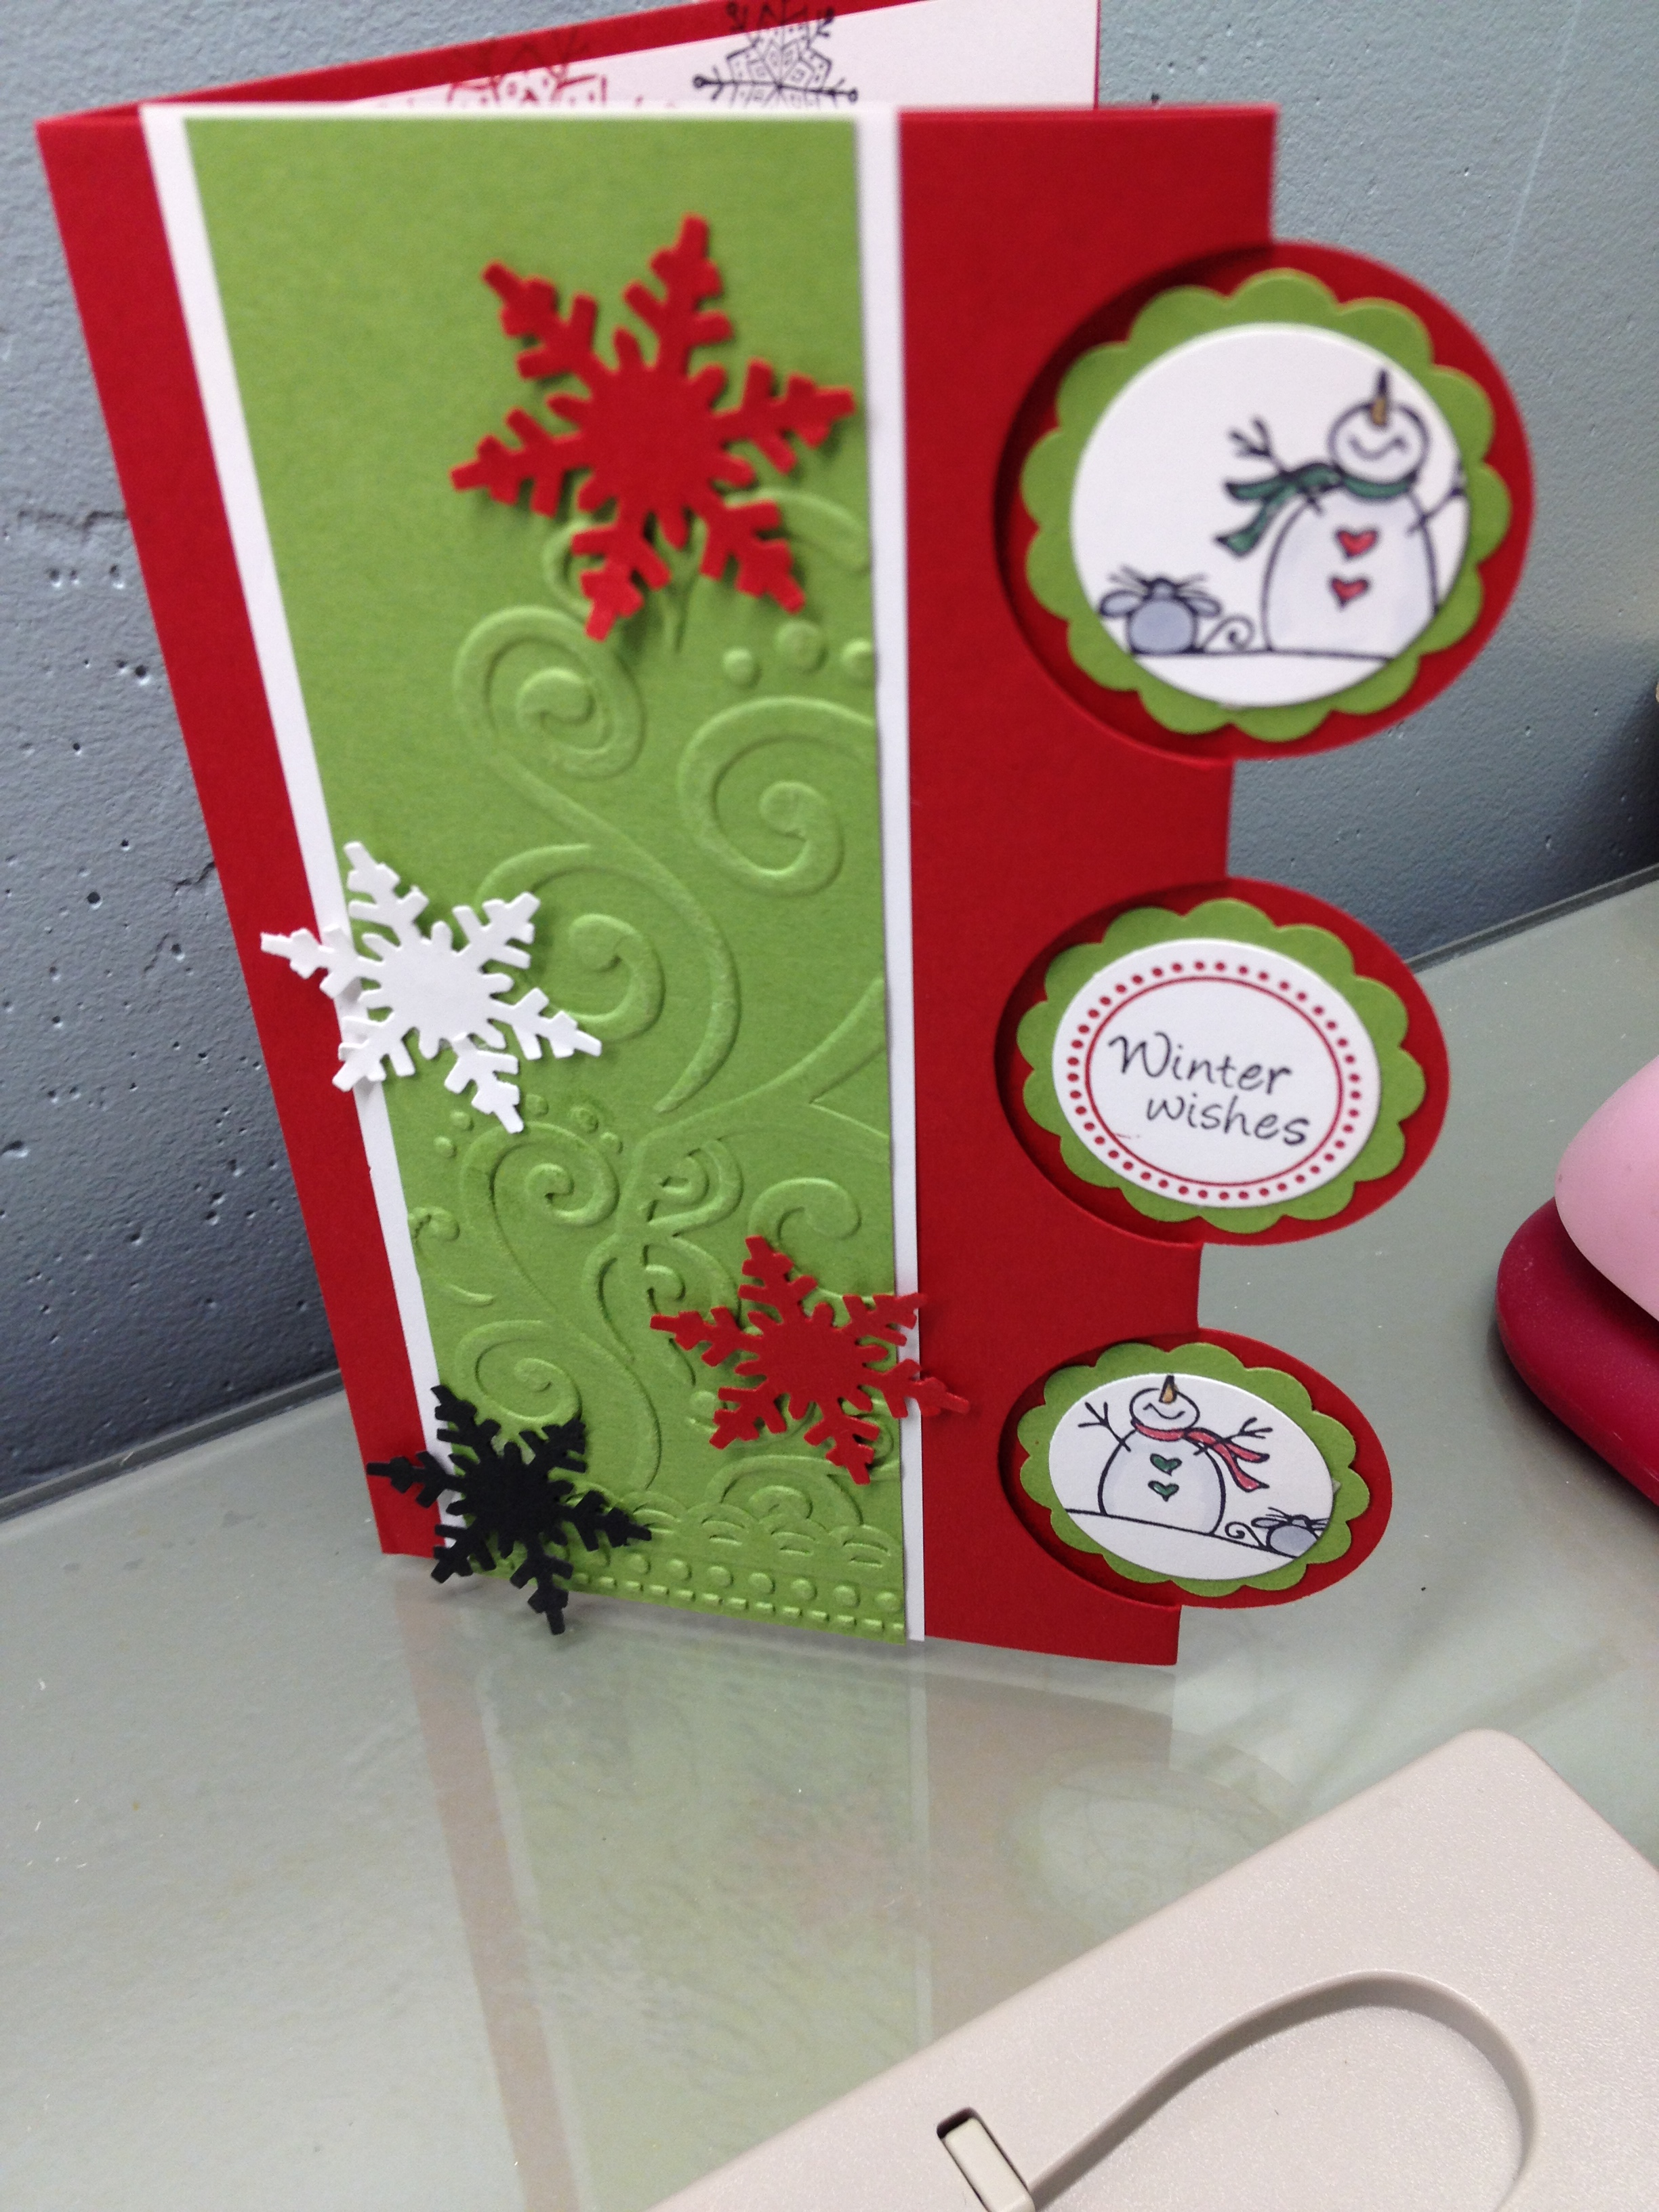 So I Really Like Using Crazy Colors For Snowman Cards! Makes Them So  Interesting. This Was A Popular Card At The One Of A Kind Rubber Stamp Show  In Madison.